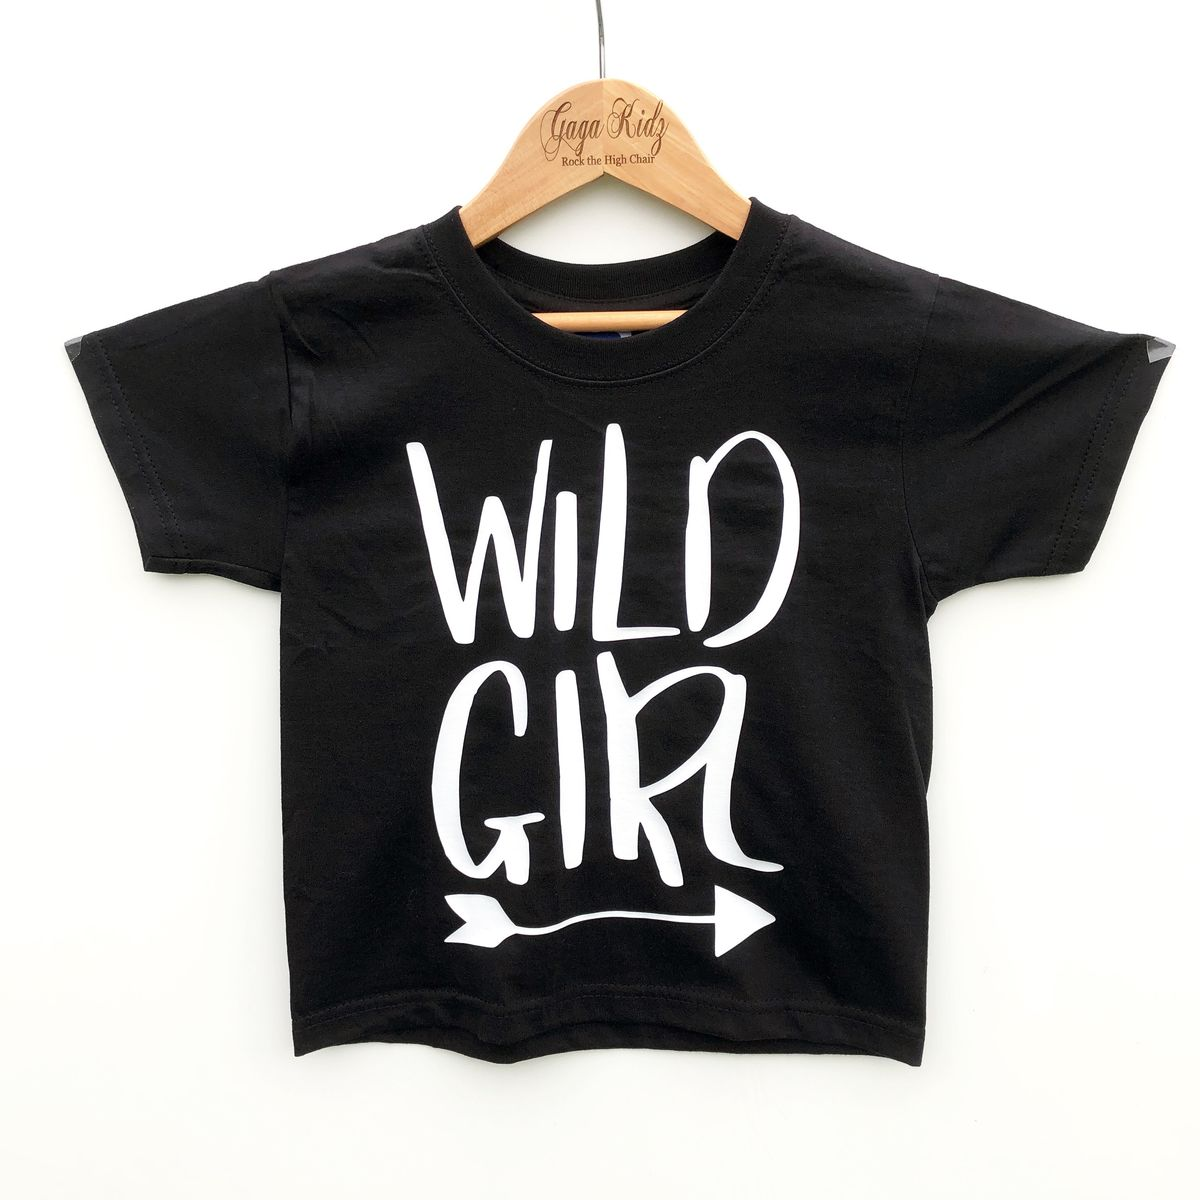 Wild Girl Black & White Kids T-Shirt (various sizes) - product image